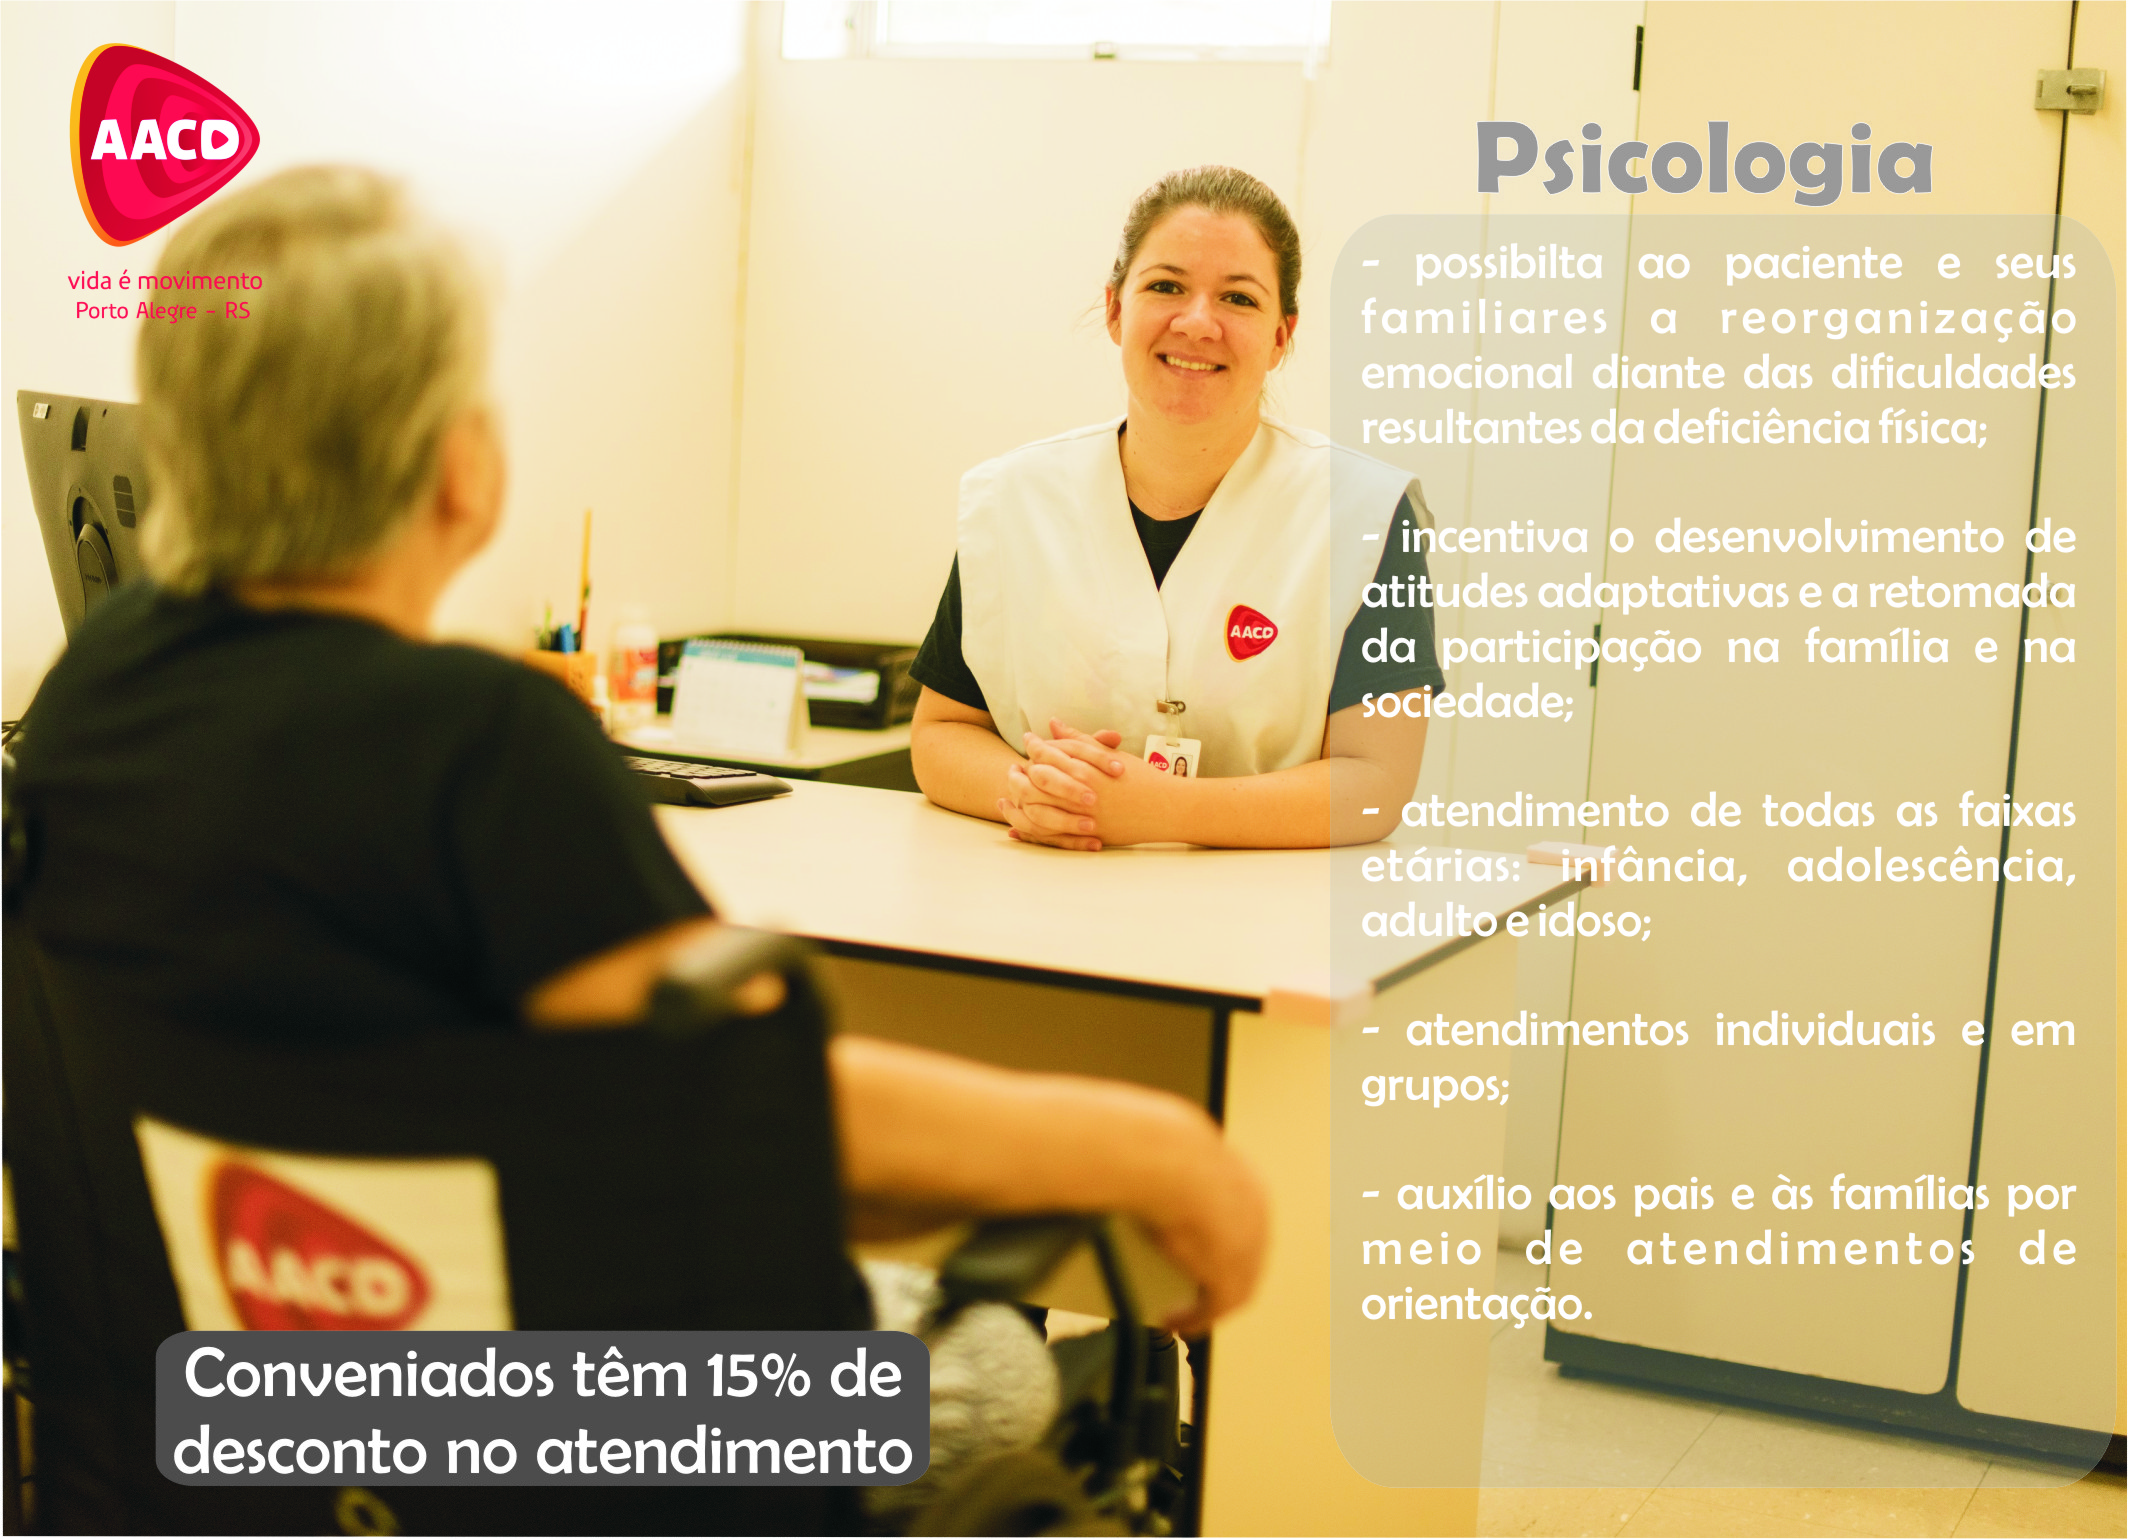 Psicologia AACD